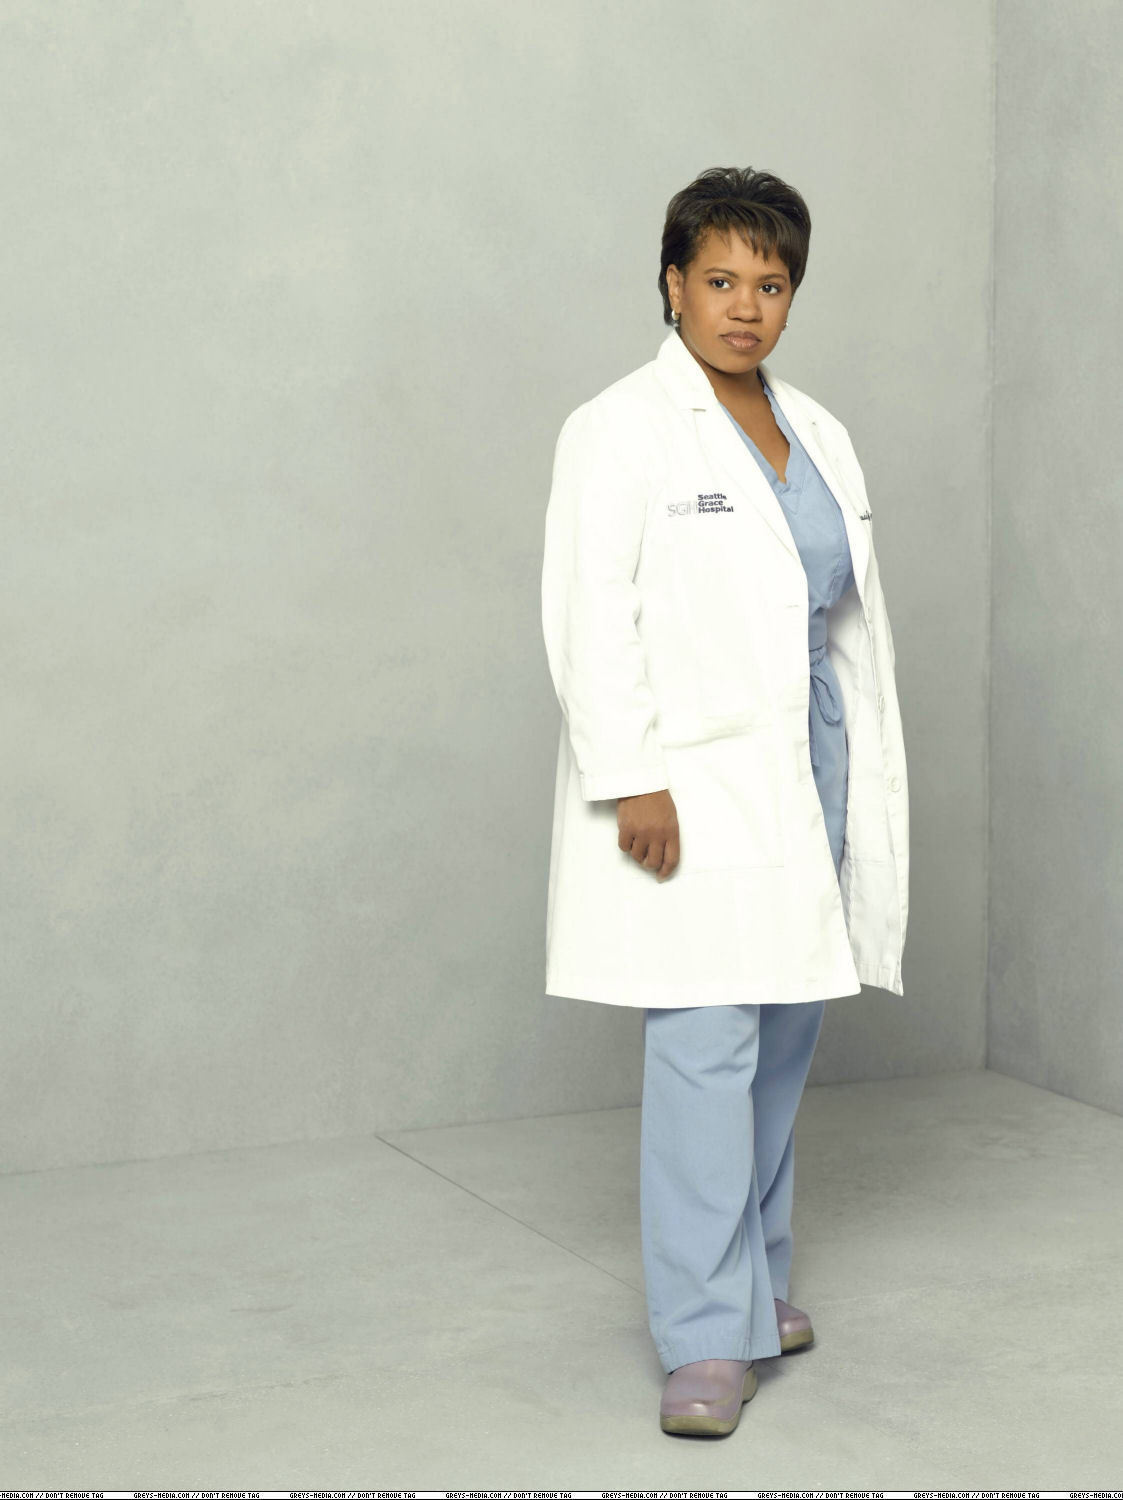 Dr. Miranda Bailey images ... HD wallpaper and background photos ...